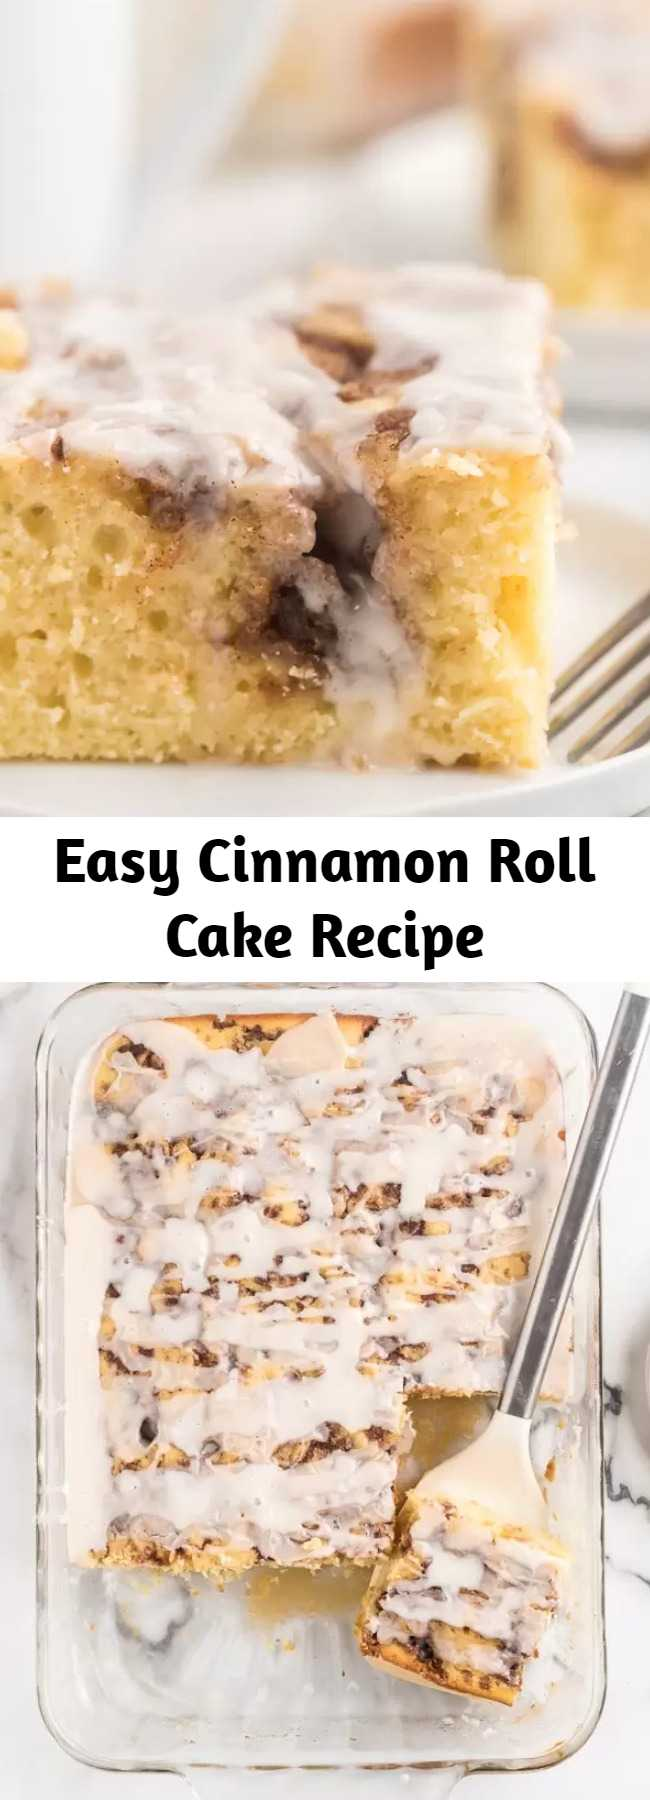 Easy Cinnamon Roll Cake Recipe - Here is a fun twist on a coffee cake recipe. This easy cinnamon roll cake recipe is the best. Get the taste of homemade cinnamon rolls without all the work. #cake #recipes #breakfastrecipes #easyrecipes